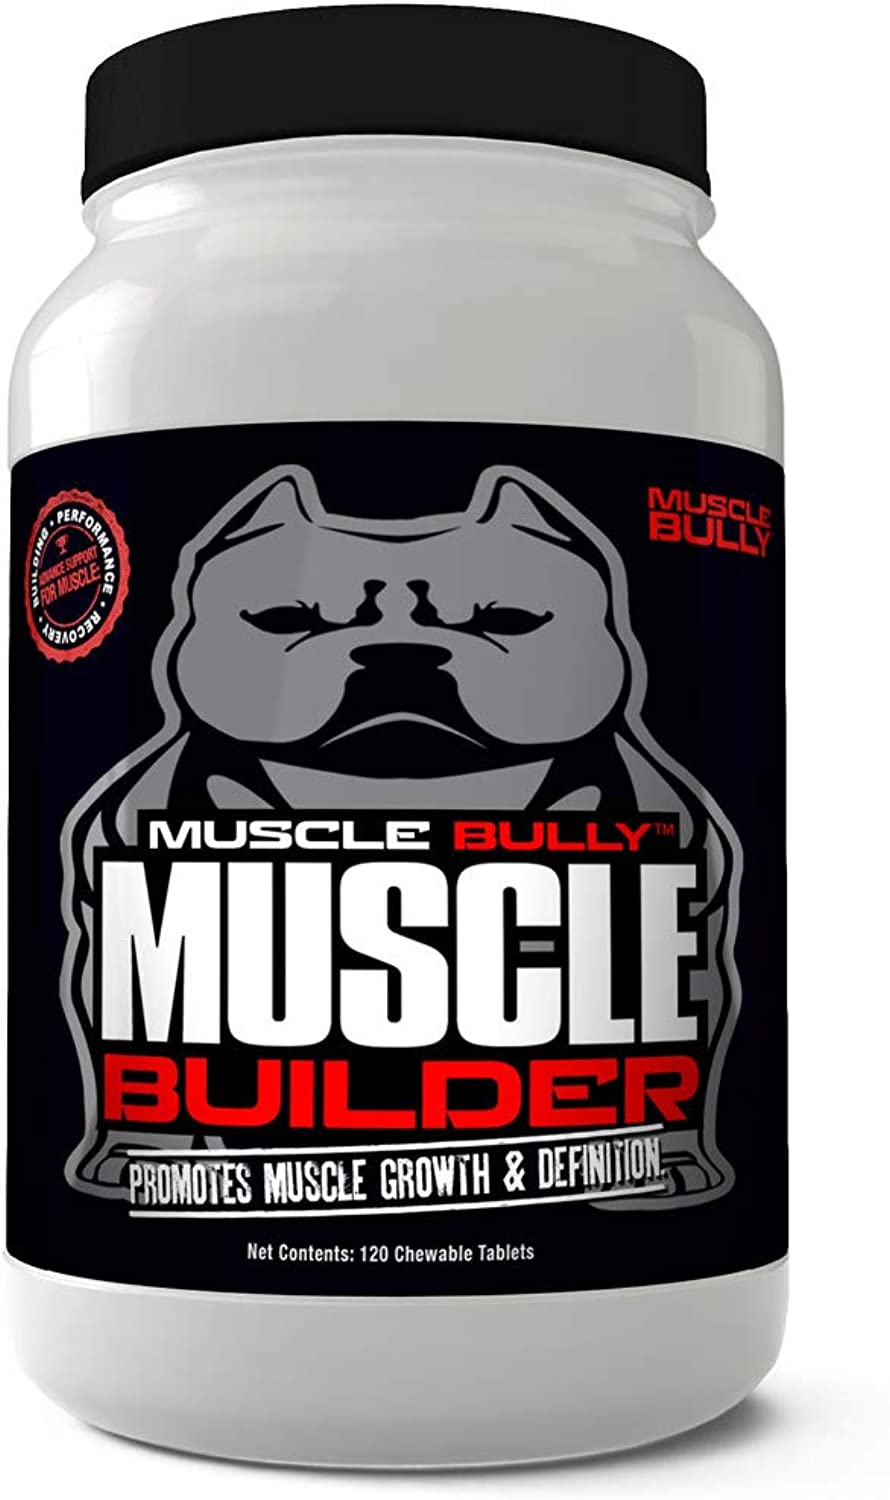 Muscle Builder Bullies, Pitbulls, Bull Breeds  Contains Proven Muscle Building Ingredients That Support Muscle Growth & Definition On Your Dog. Made in The USA. 100% Safe, No Side Effects.